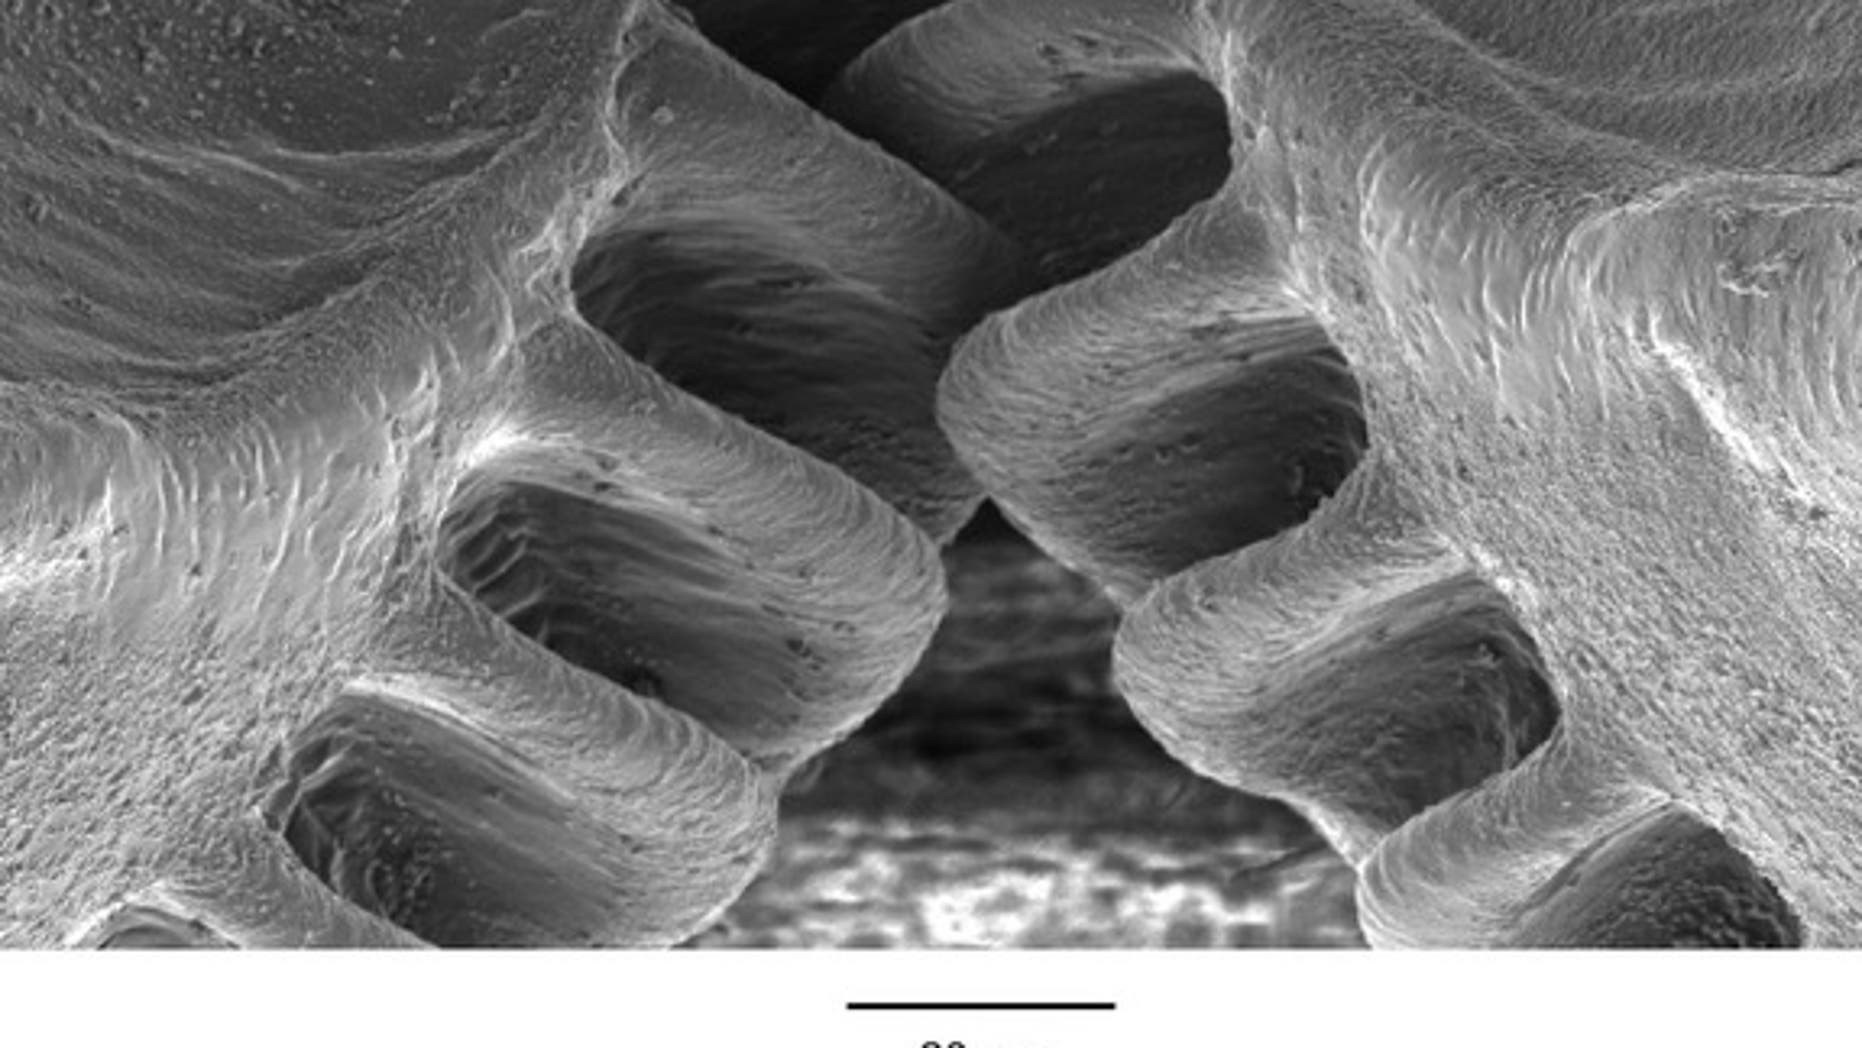 The intermeshing gears on the hind legs of a planthopper insect are shown in this scanning electron micrograph image.